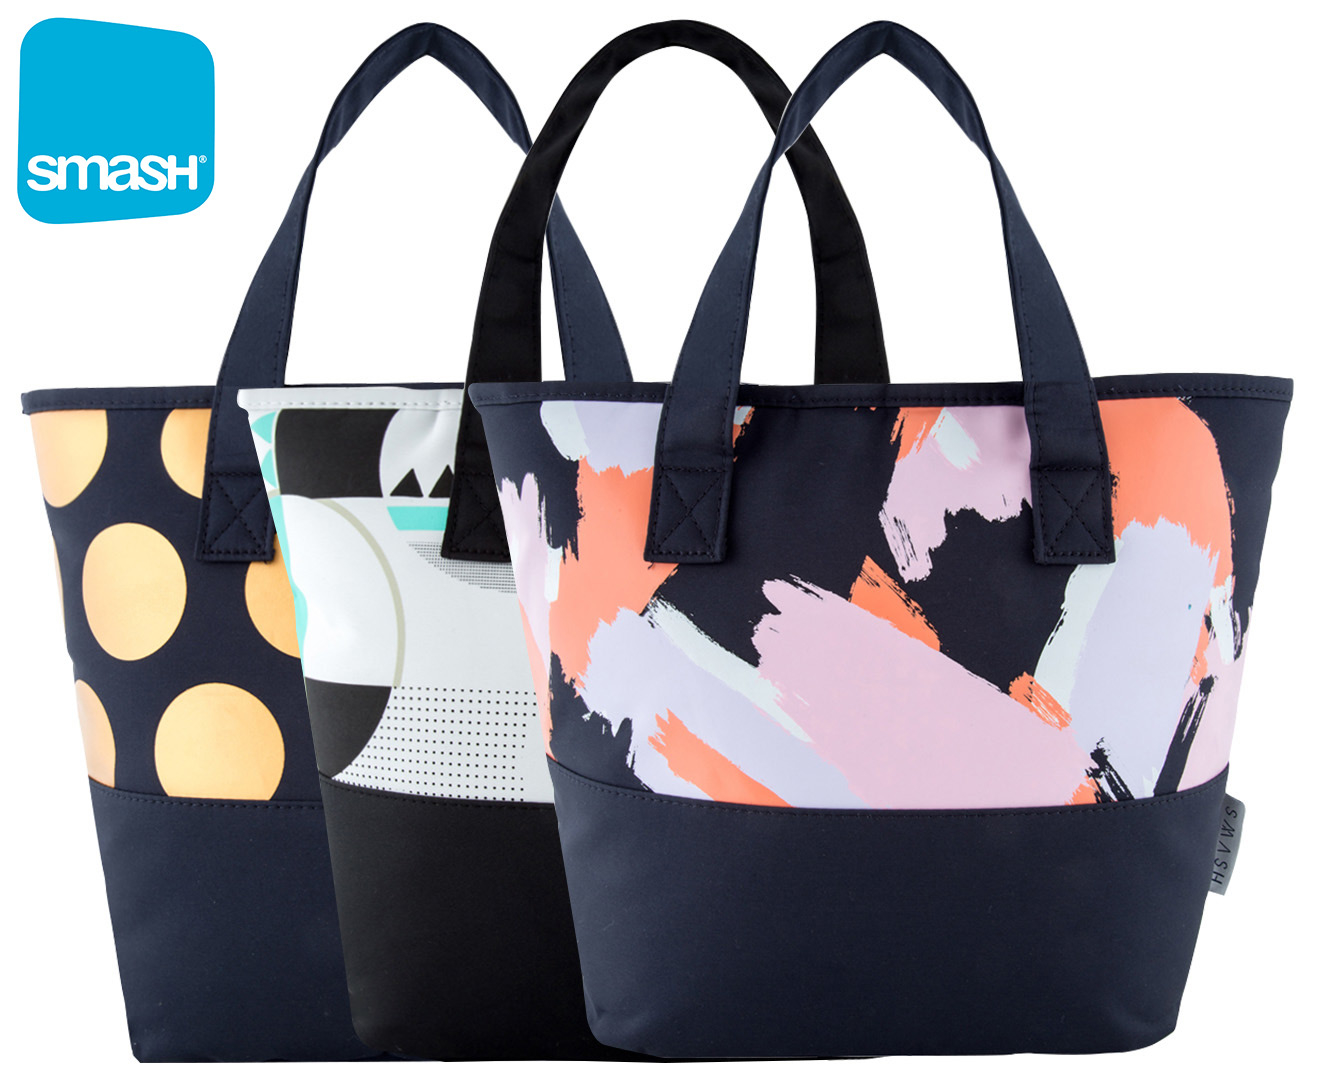 smash layla insulated lunch bag assorted scoopon shopping. Black Bedroom Furniture Sets. Home Design Ideas